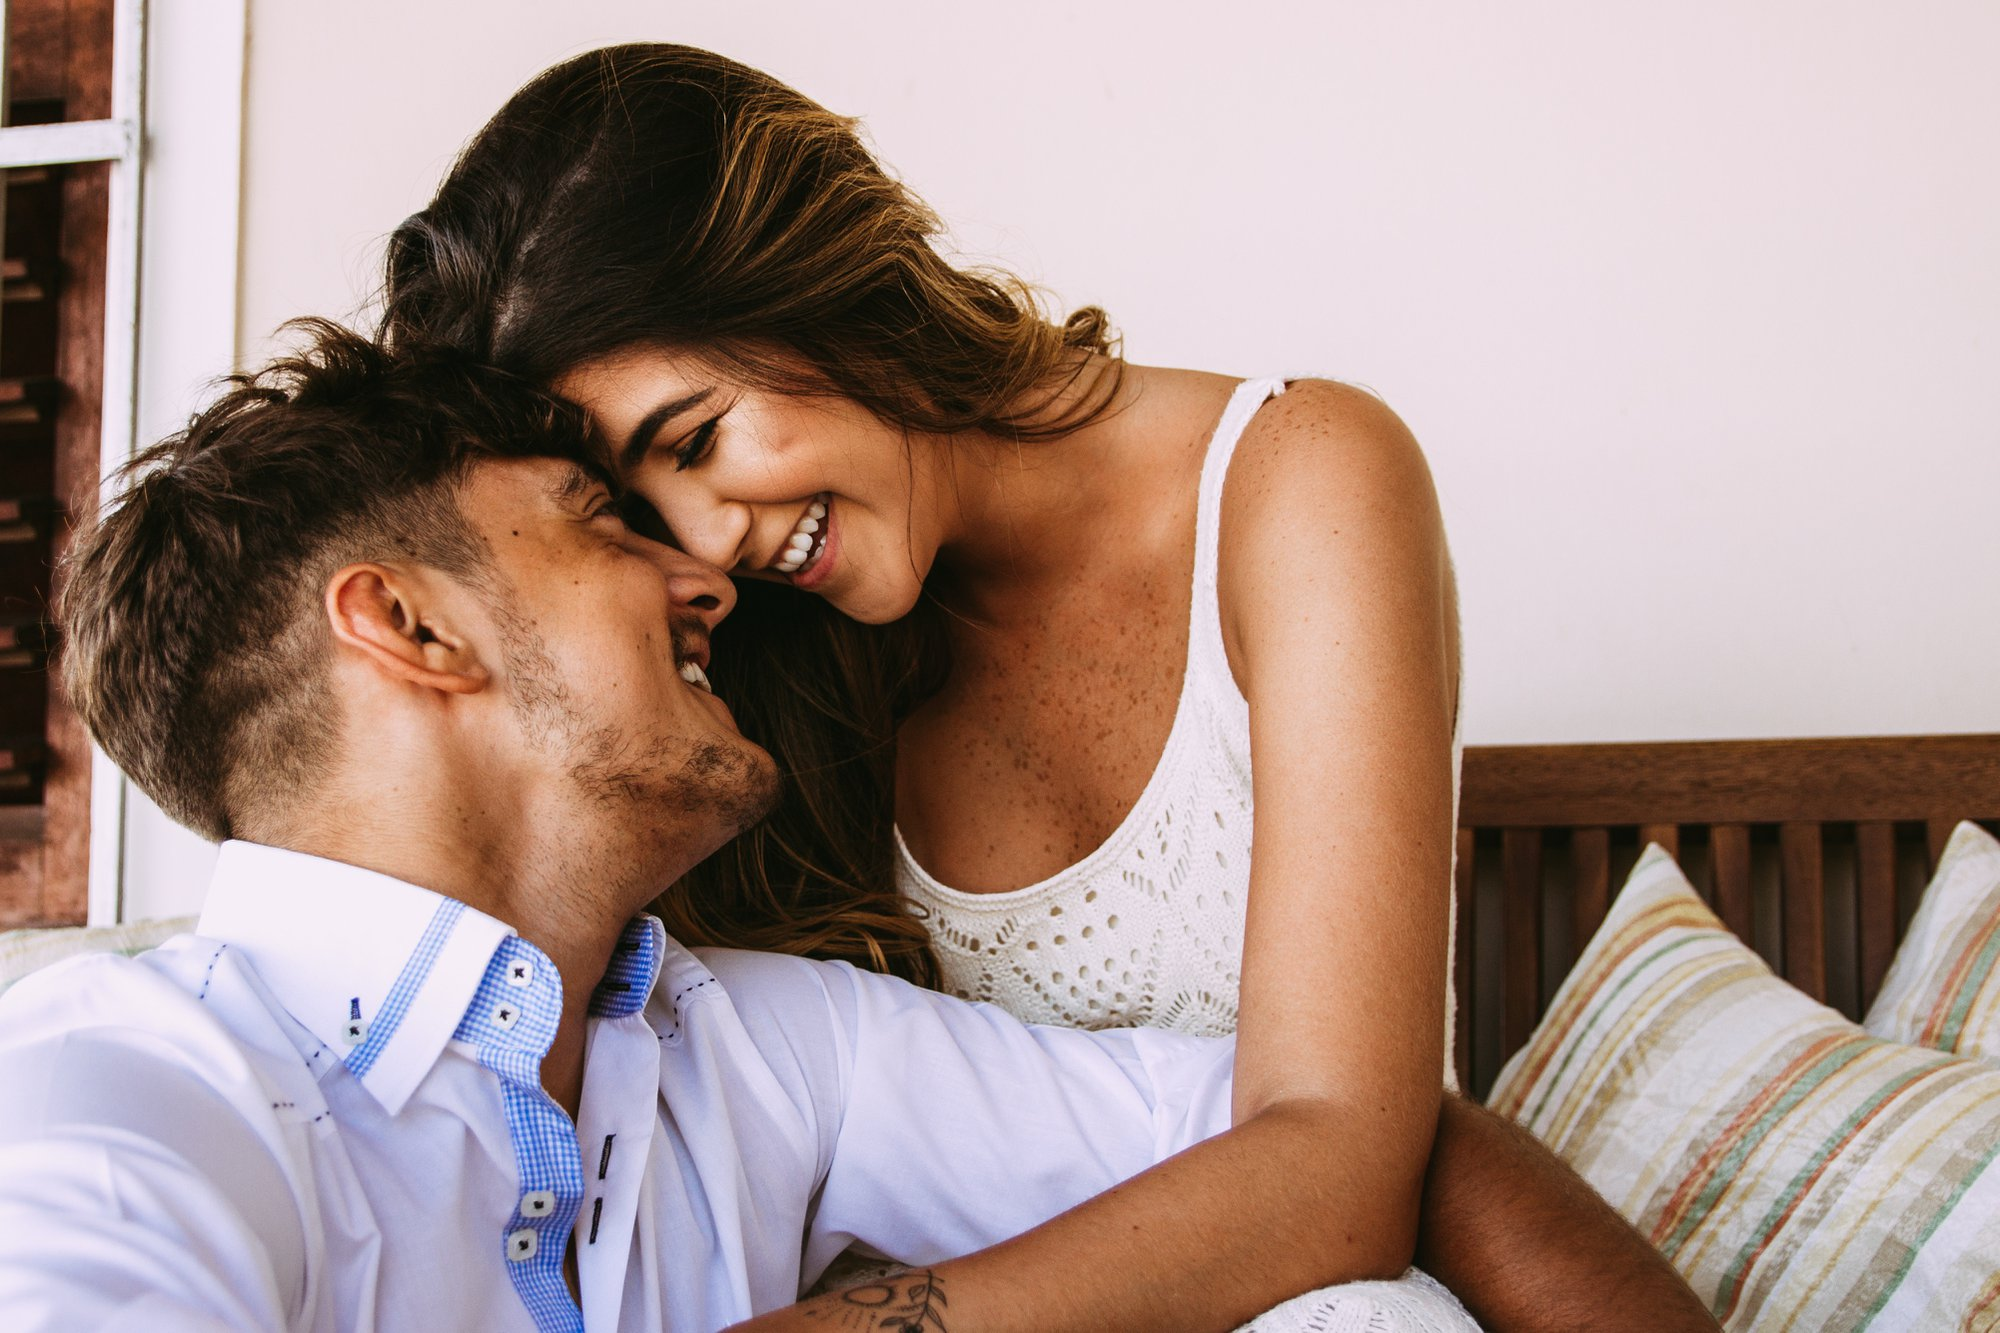 Dating Tips: 3 Things To Do Before Becoming Exclusive